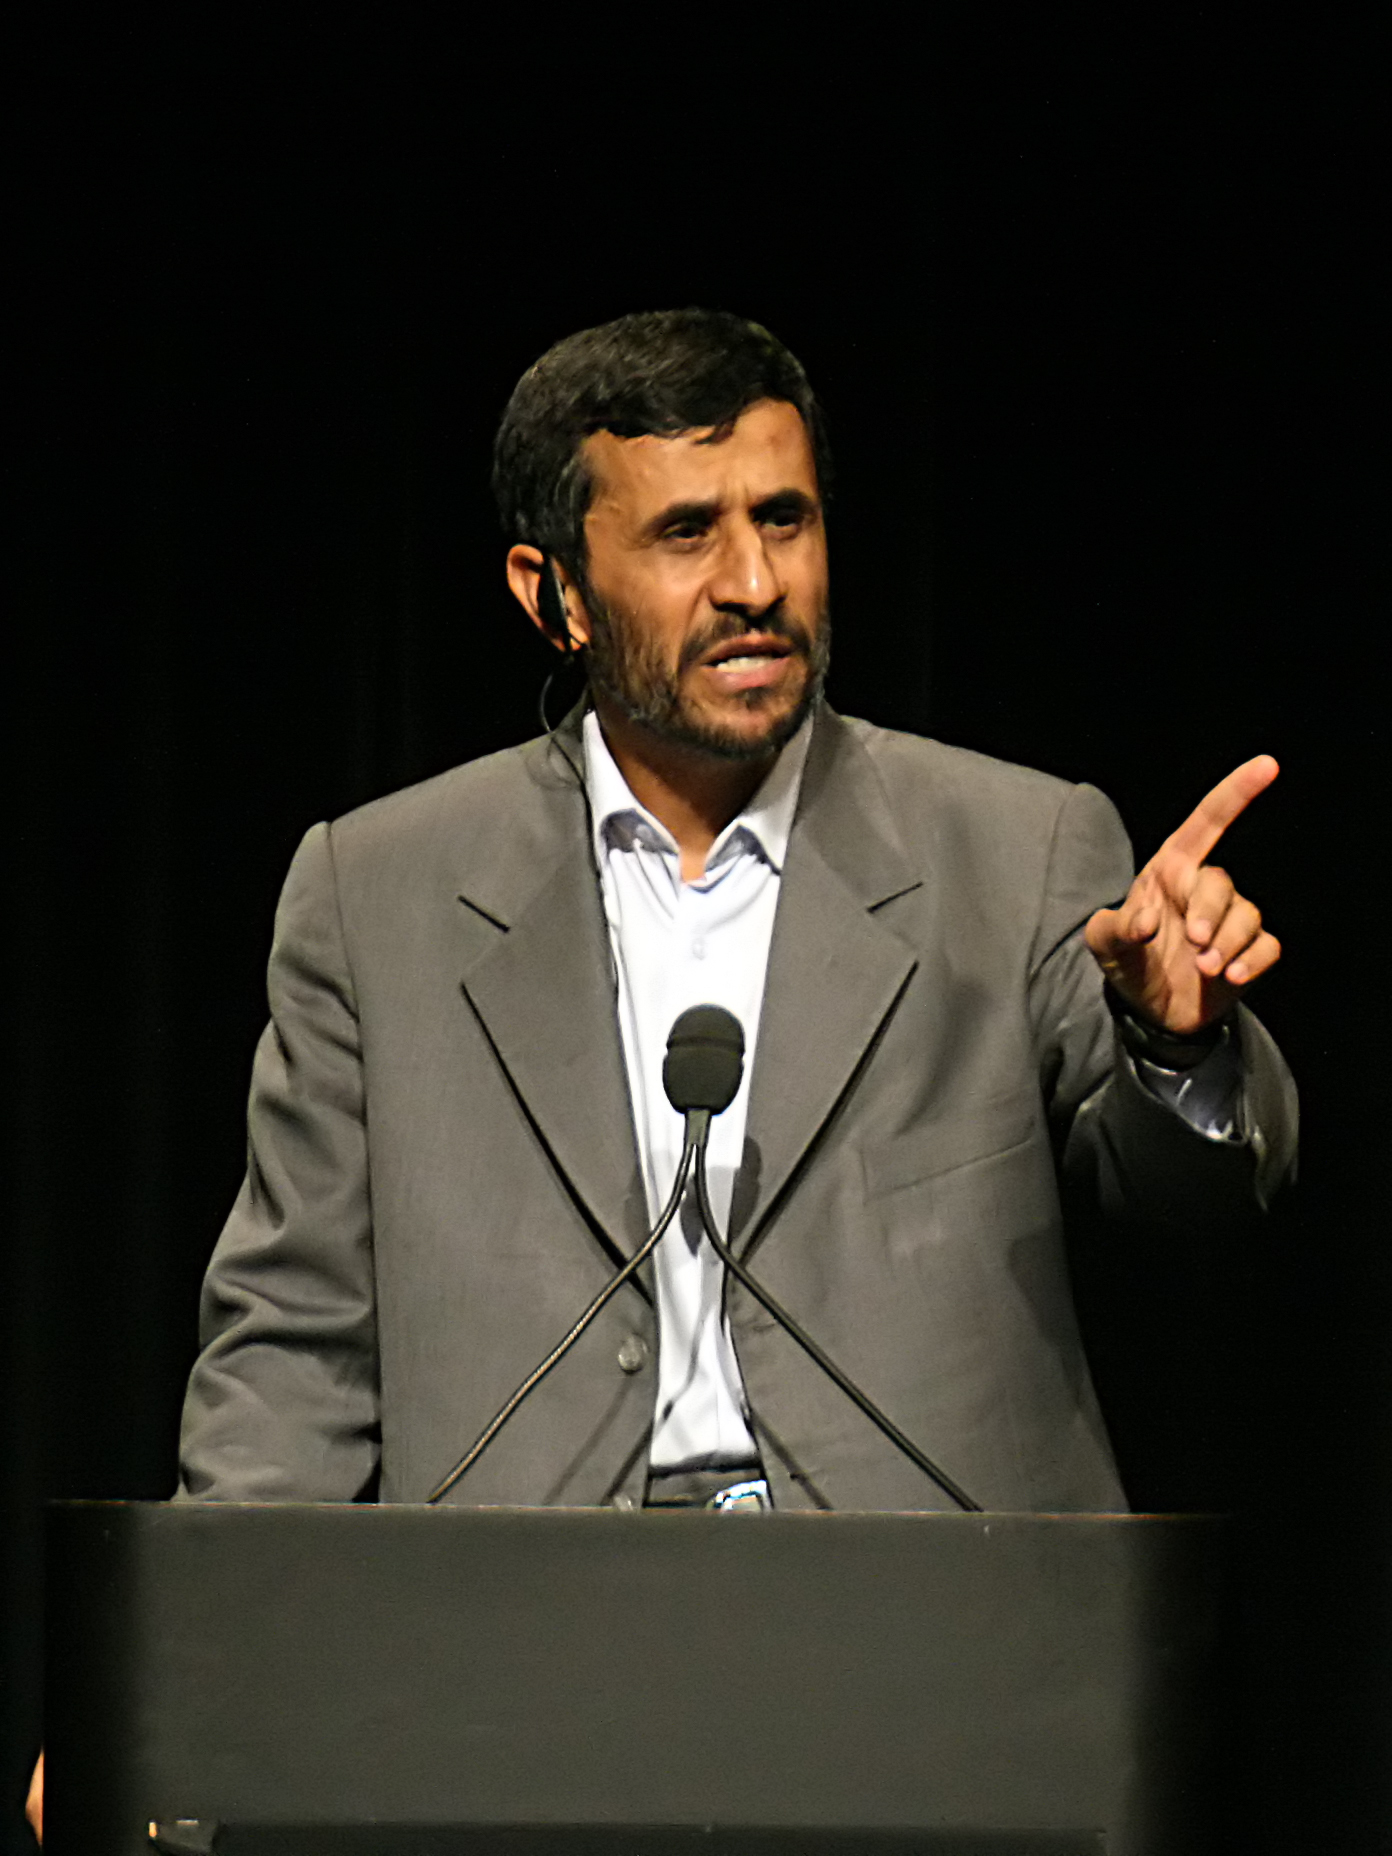 Mahmoud Ahmadinejad Net Worth